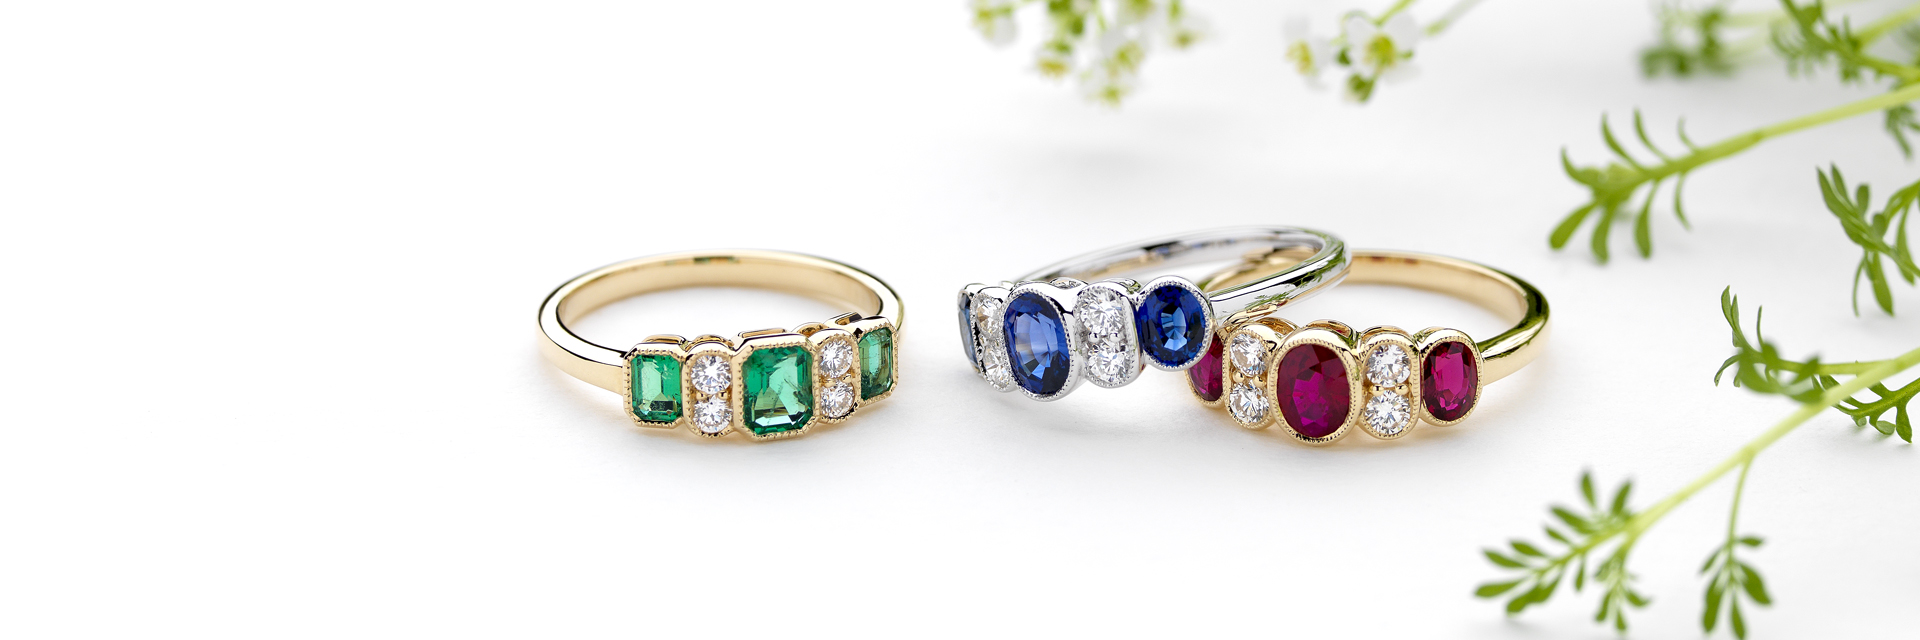 GEMSTONE JEWELLERY FROM PRAVINS